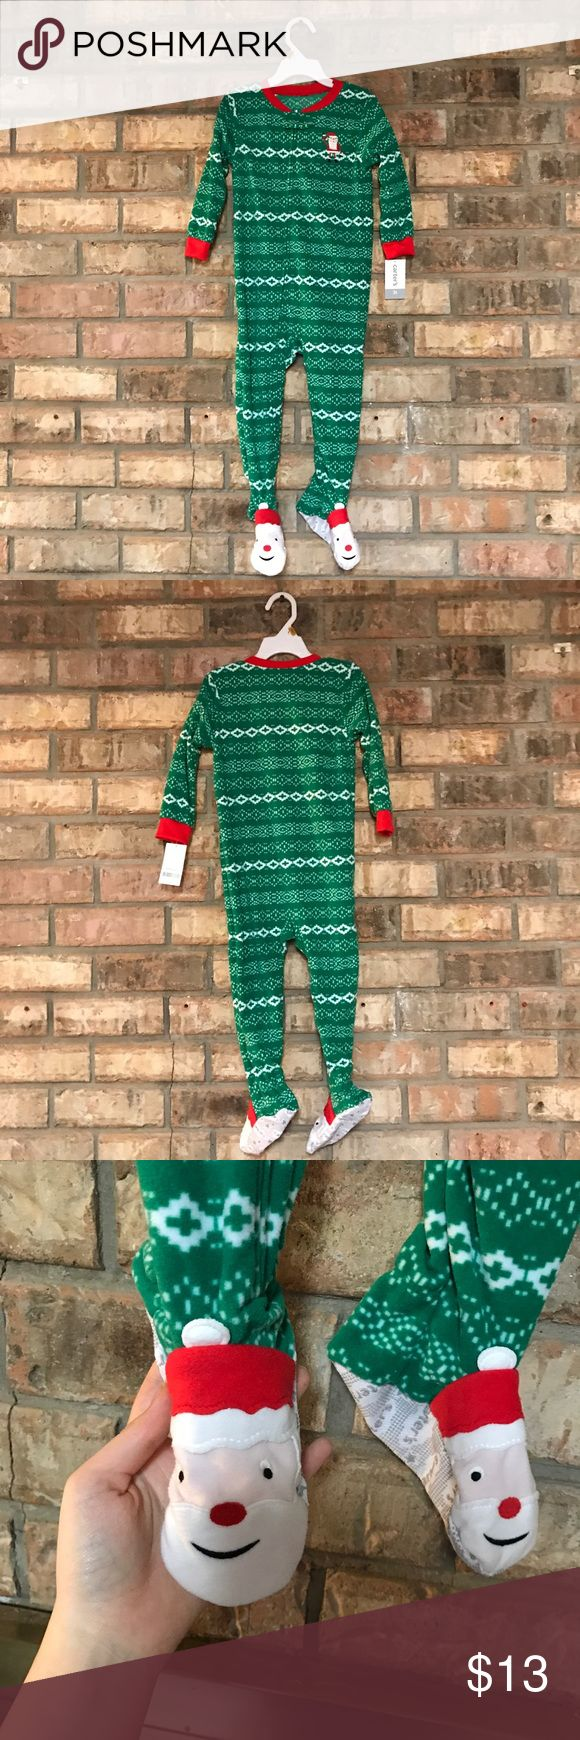 Christmas Onesie Pajamas Adorable Christmas pajamas. The feet have grips on the bottom so you don't slip. Brand new with tags!  Size 3t. Carter's Pajamas